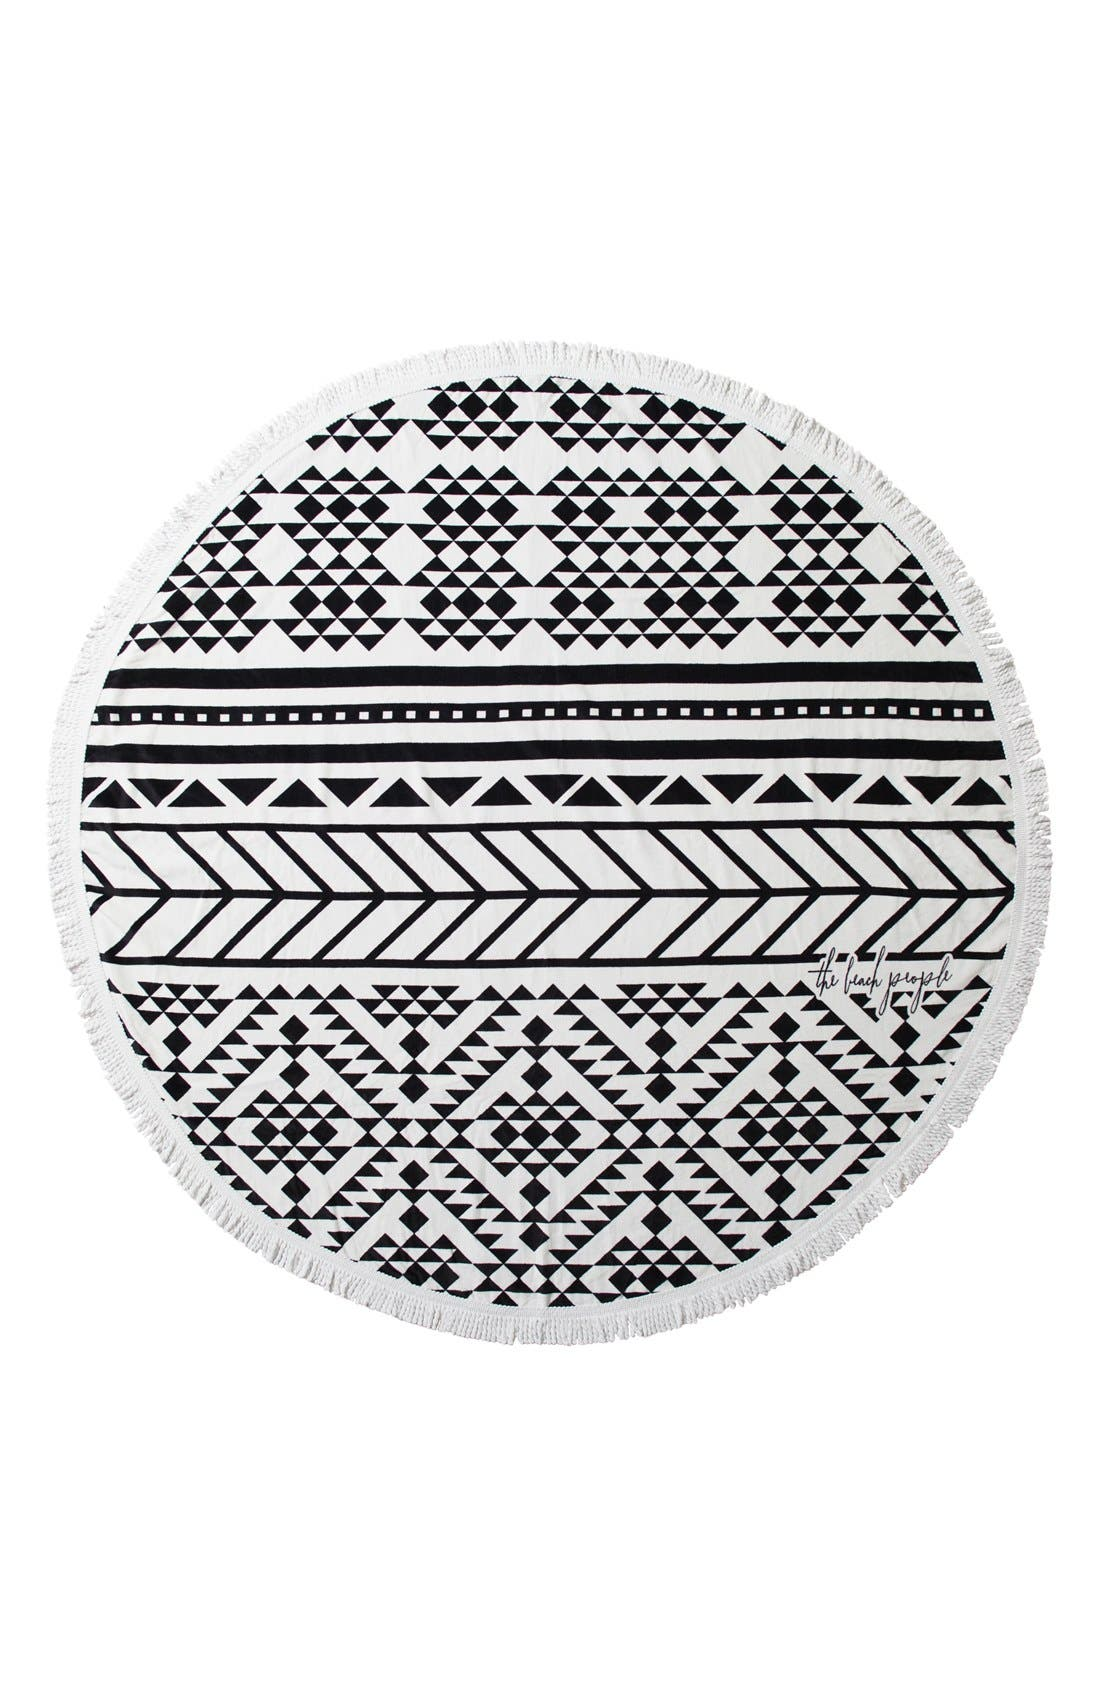 Alternate Image 1 Selected - The Beach People Geometric Print Round Beach Towel